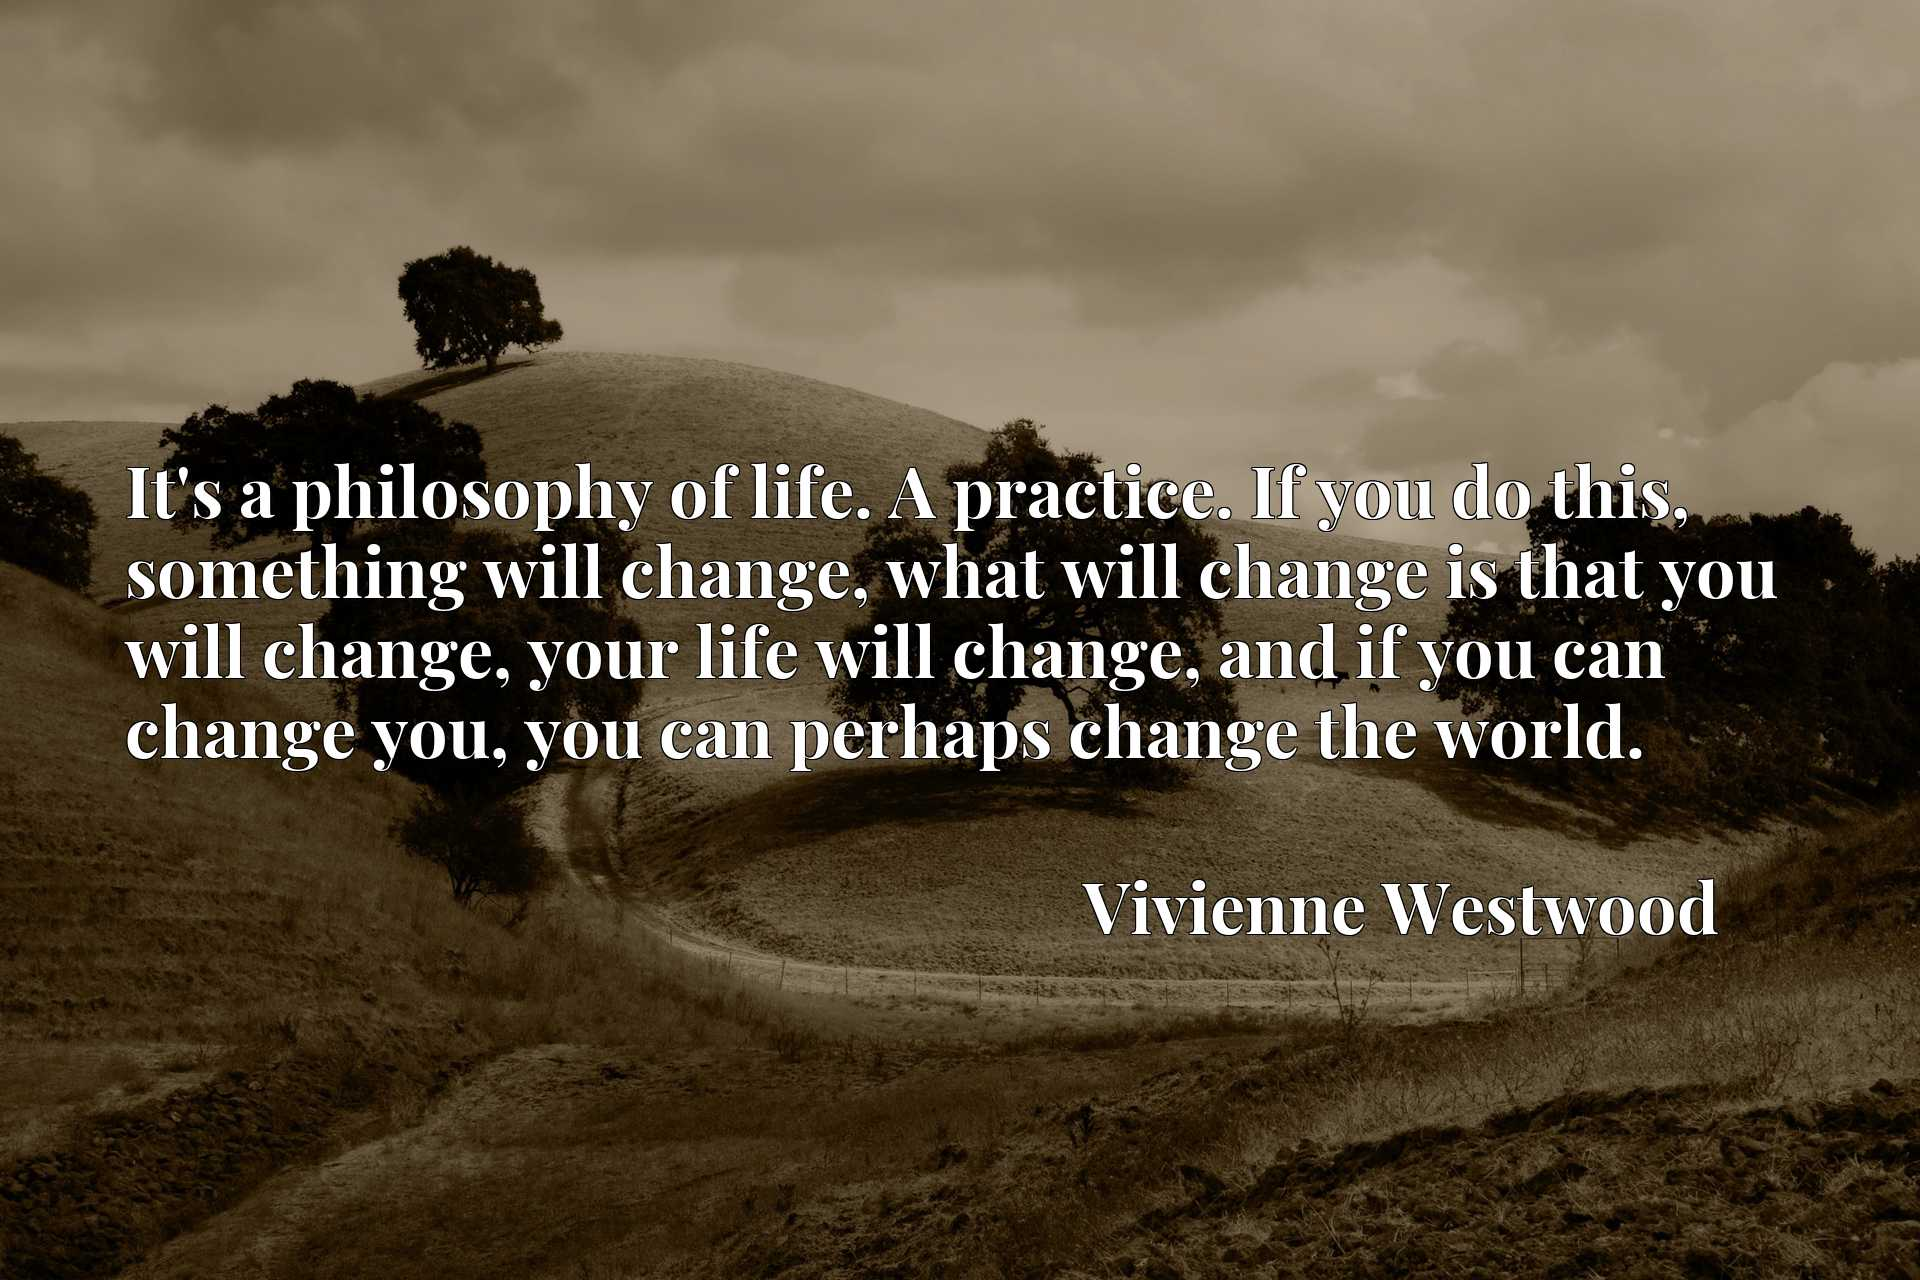 It's a philosophy of life. A practice. If you do this, something will change, what will change is that you will change, your life will change, and if you can change you, you can perhaps change the world.